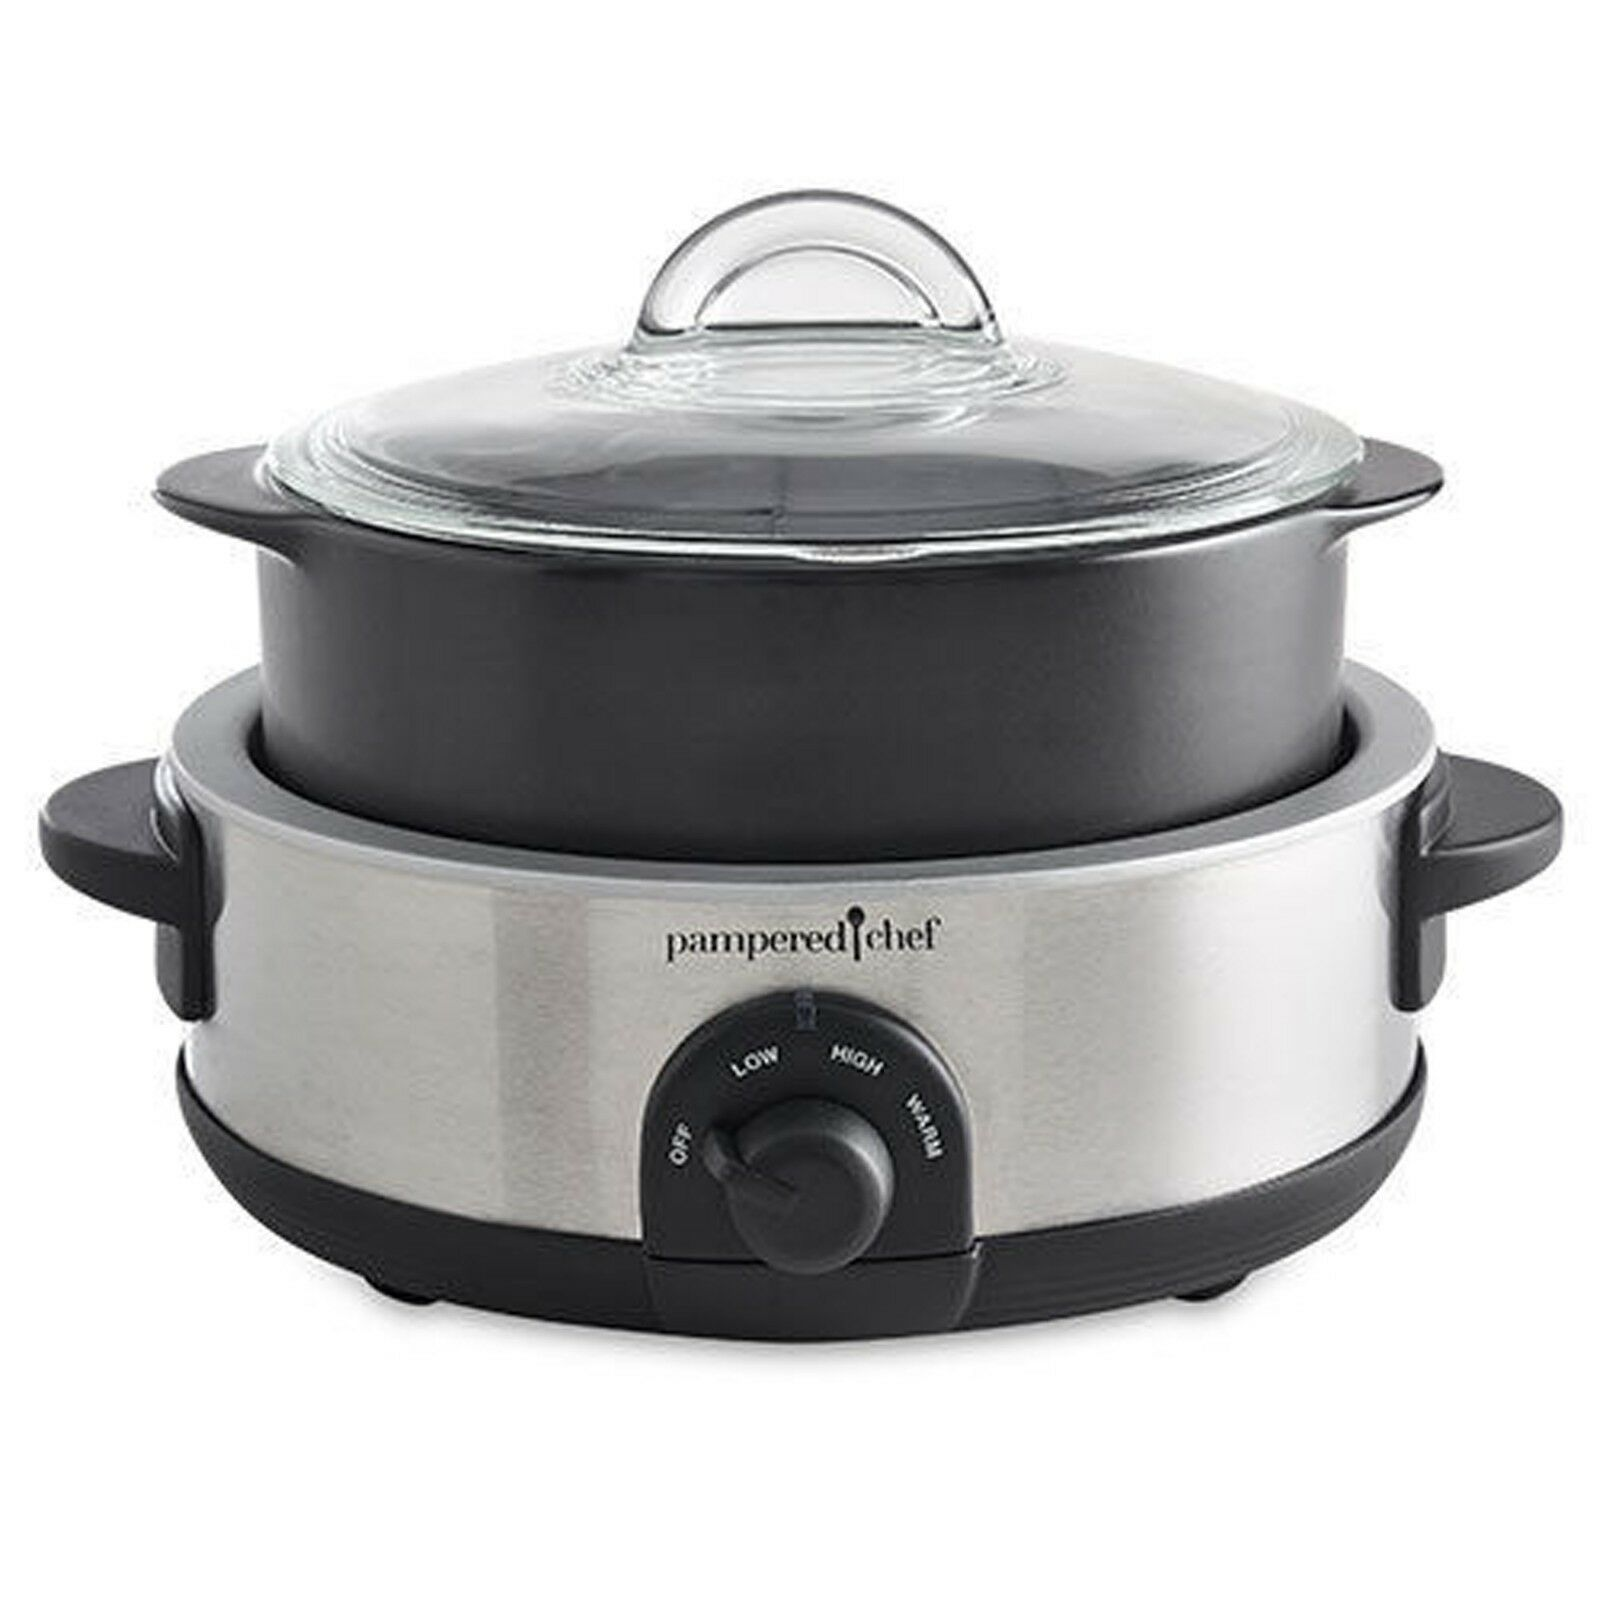 Pampered Chef 4quart Rockcrok Dutch Oven Ebay